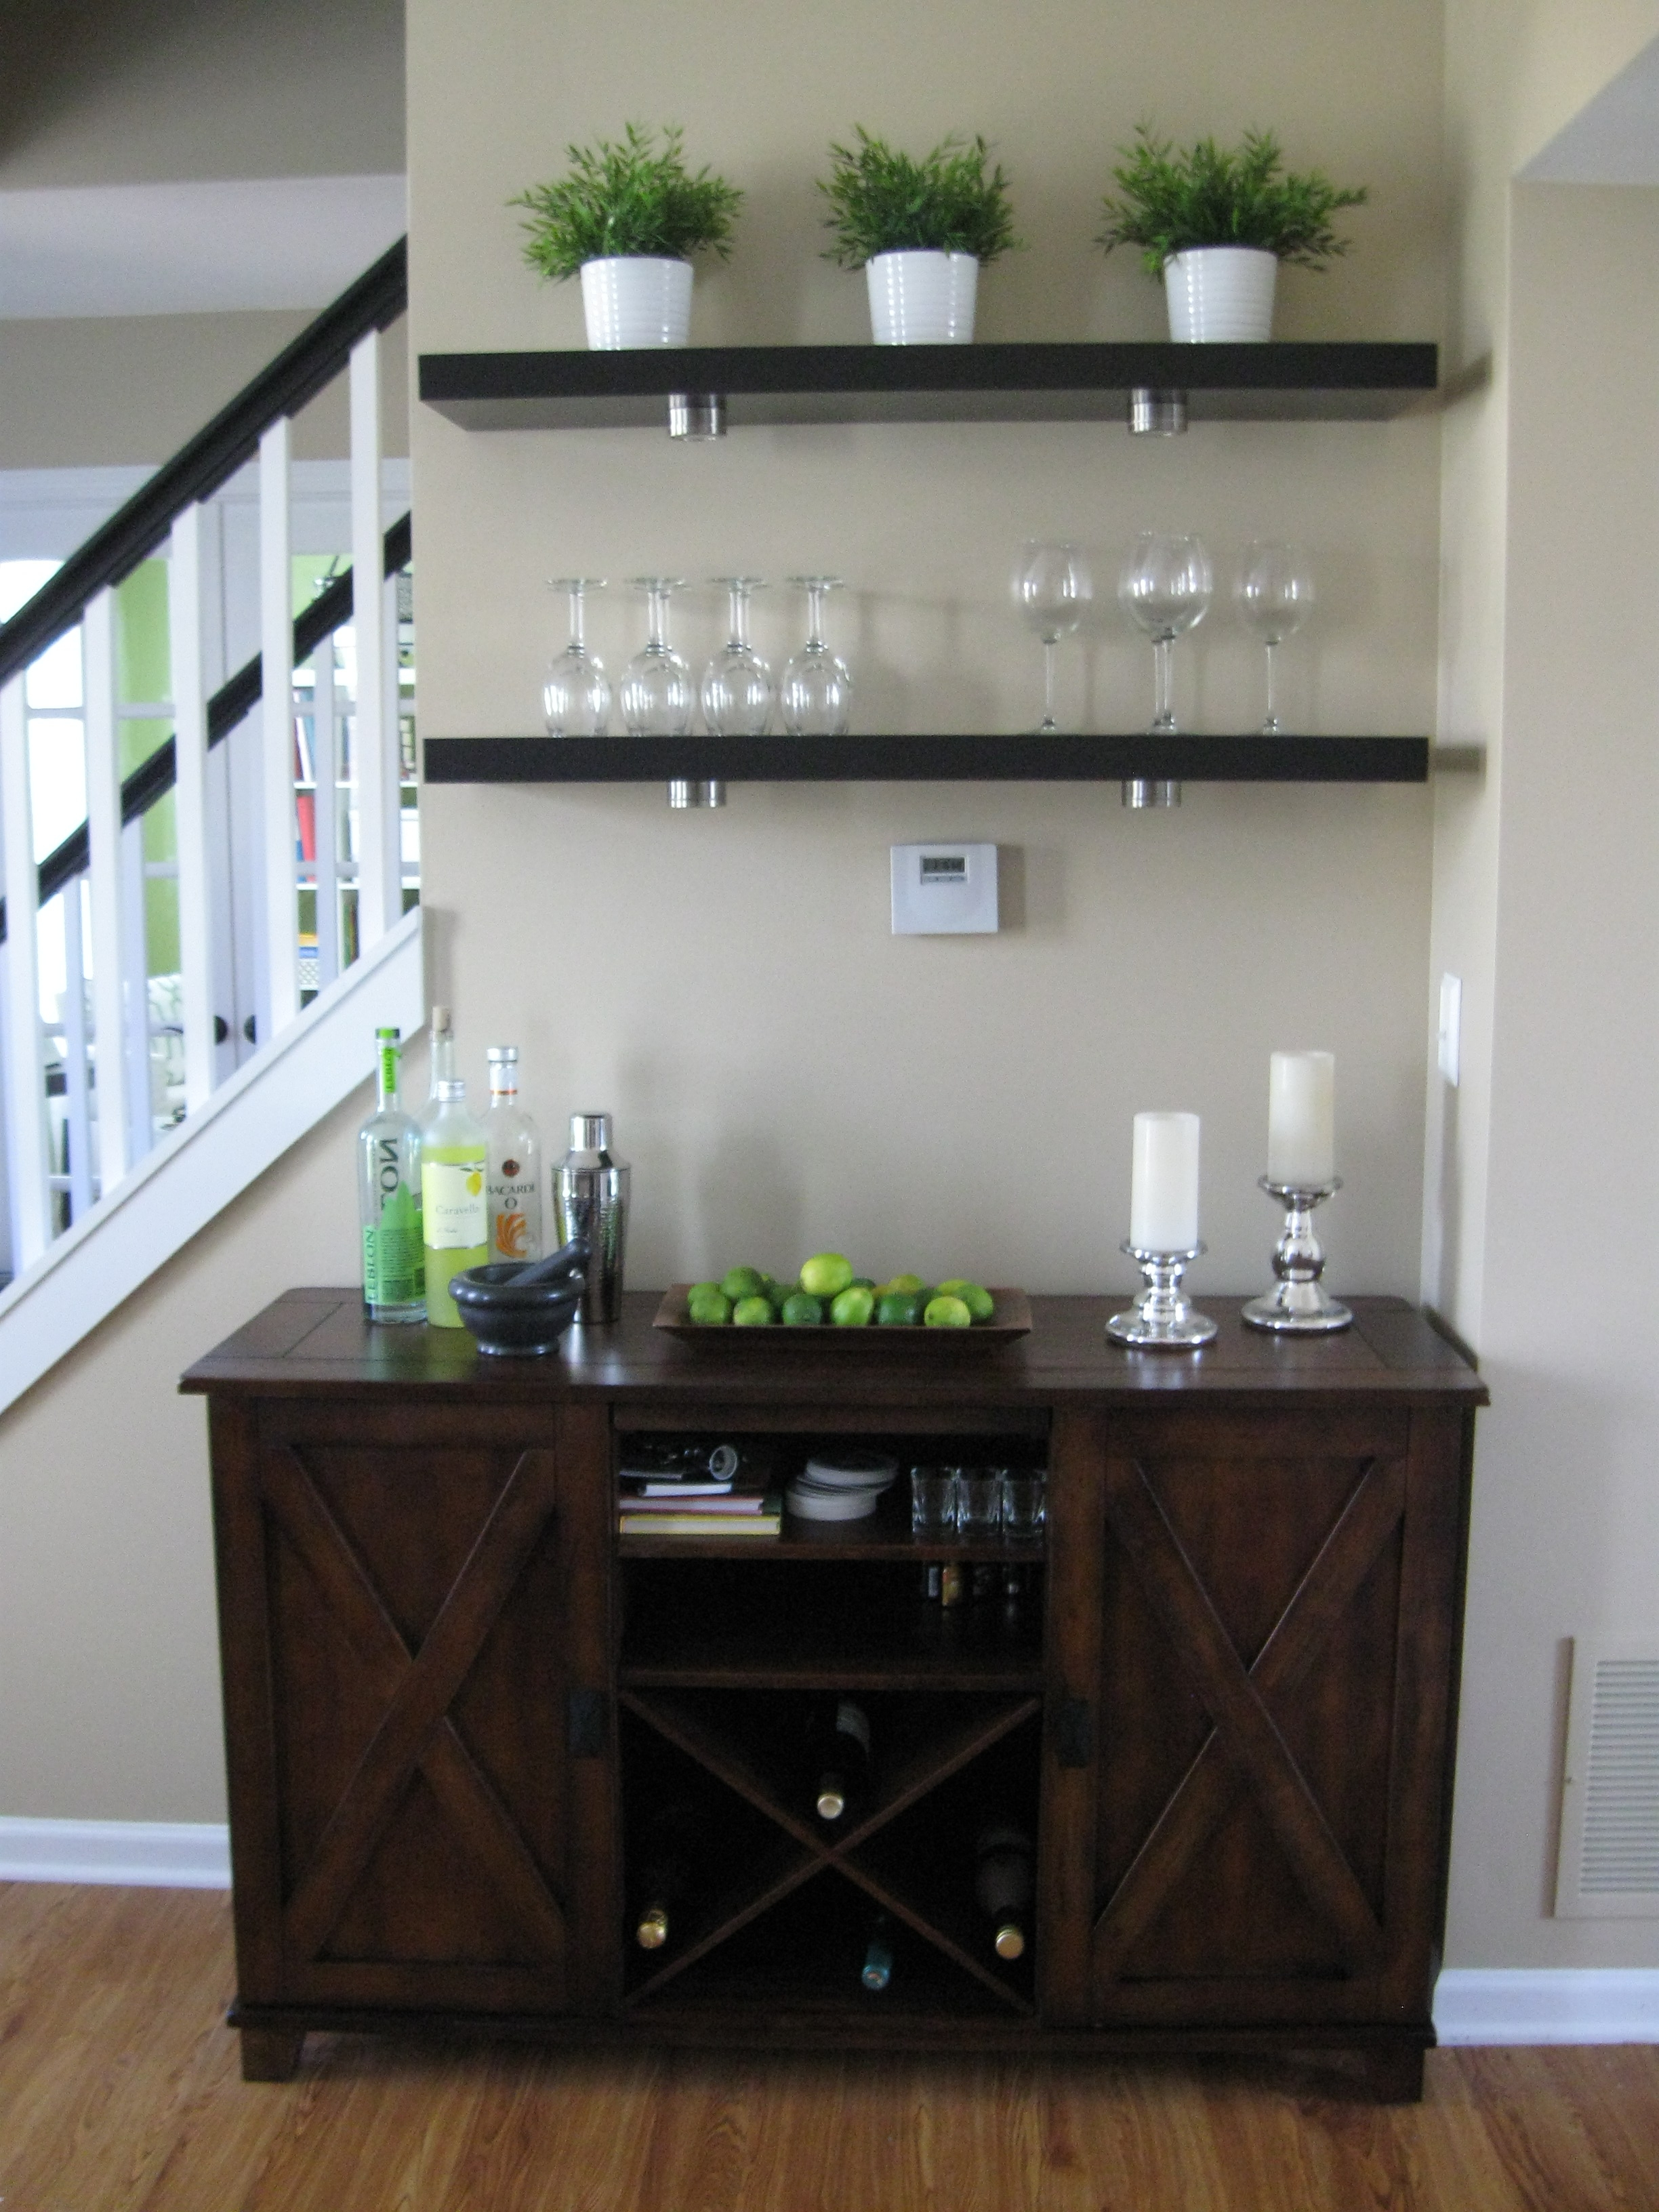 Verona Buffet Ikea Lack Shelves W Wine Glass Storage Underneath Throughout Glass Shelves For Bar Area (Image 15 of 15)